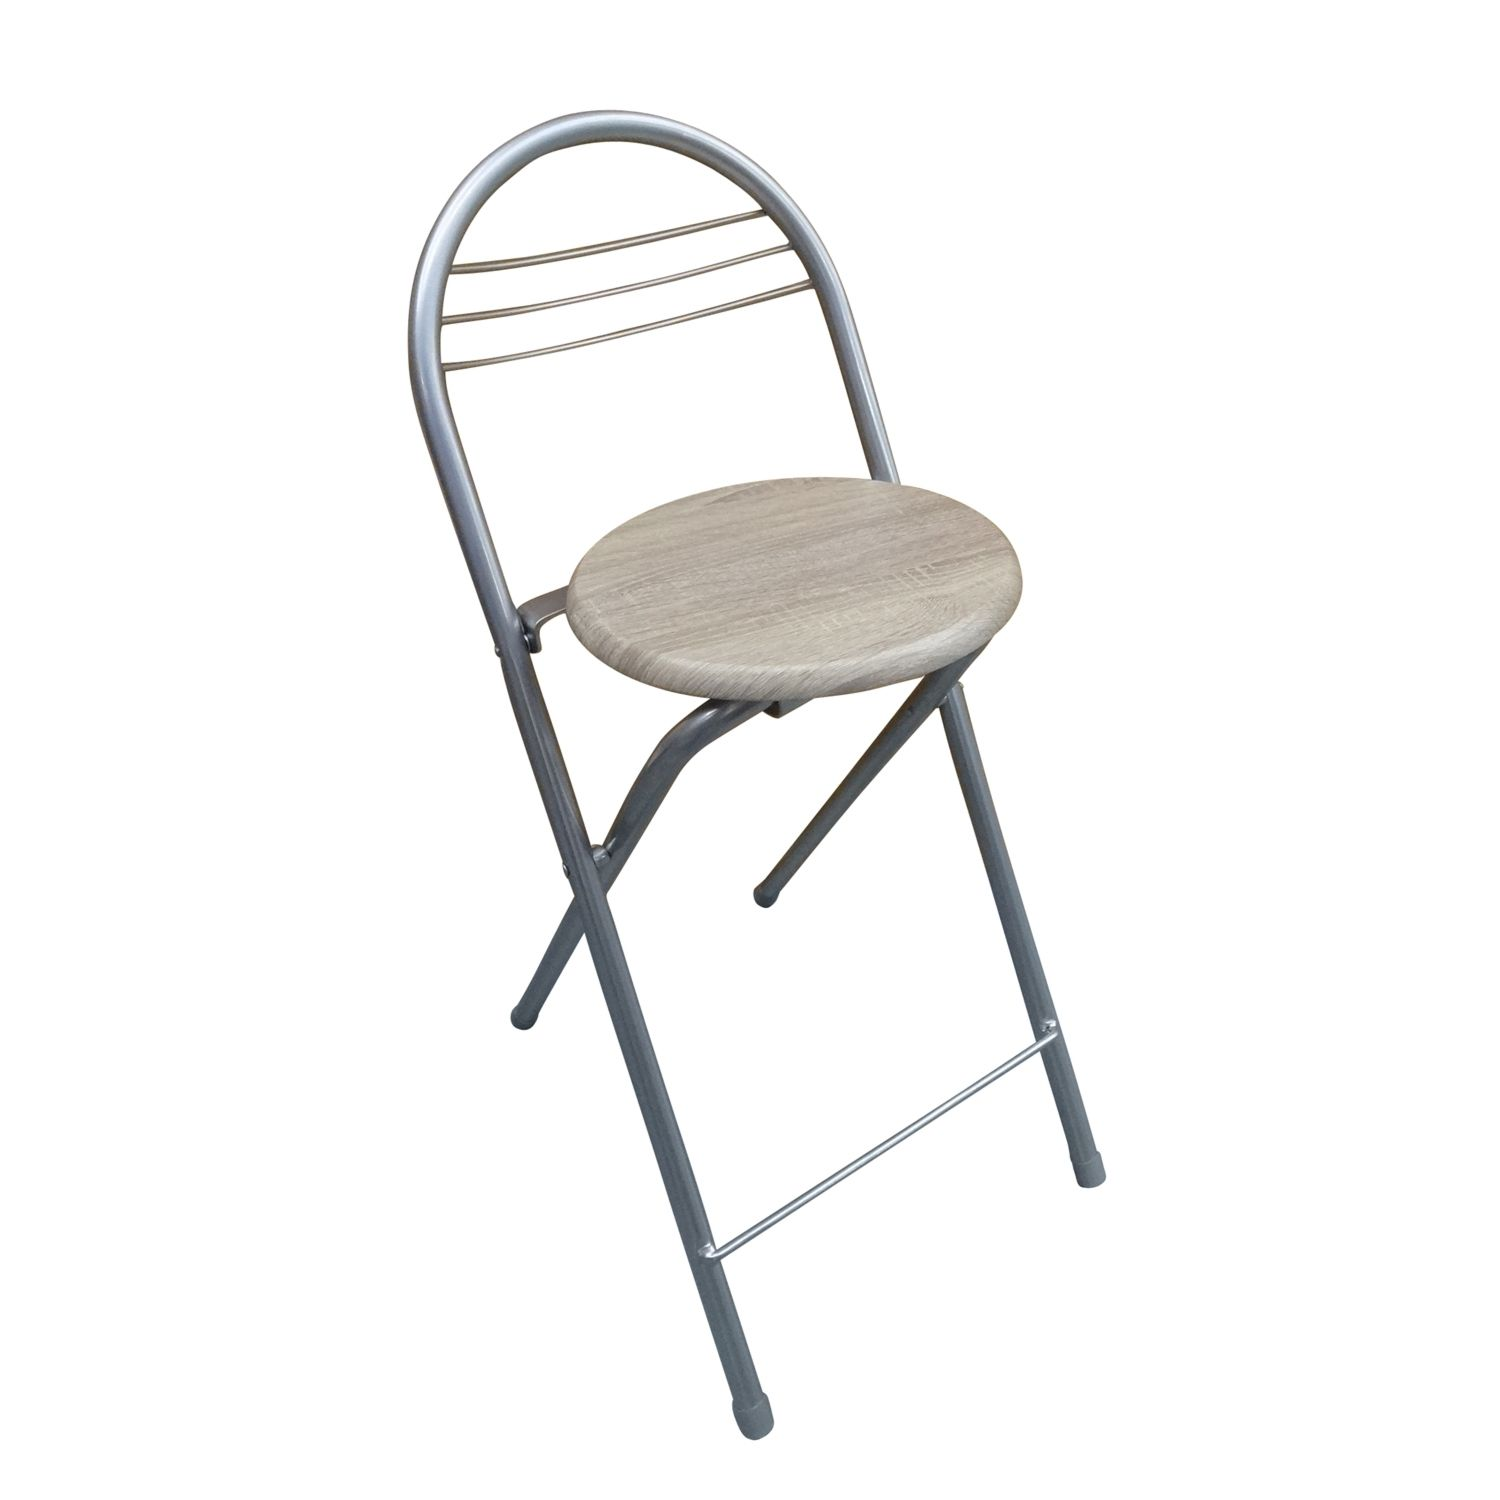 Fabulous Sonoma Folding Chair Kitchen Folding Chair Chair Gamerscity Chair Design For Home Gamerscityorg